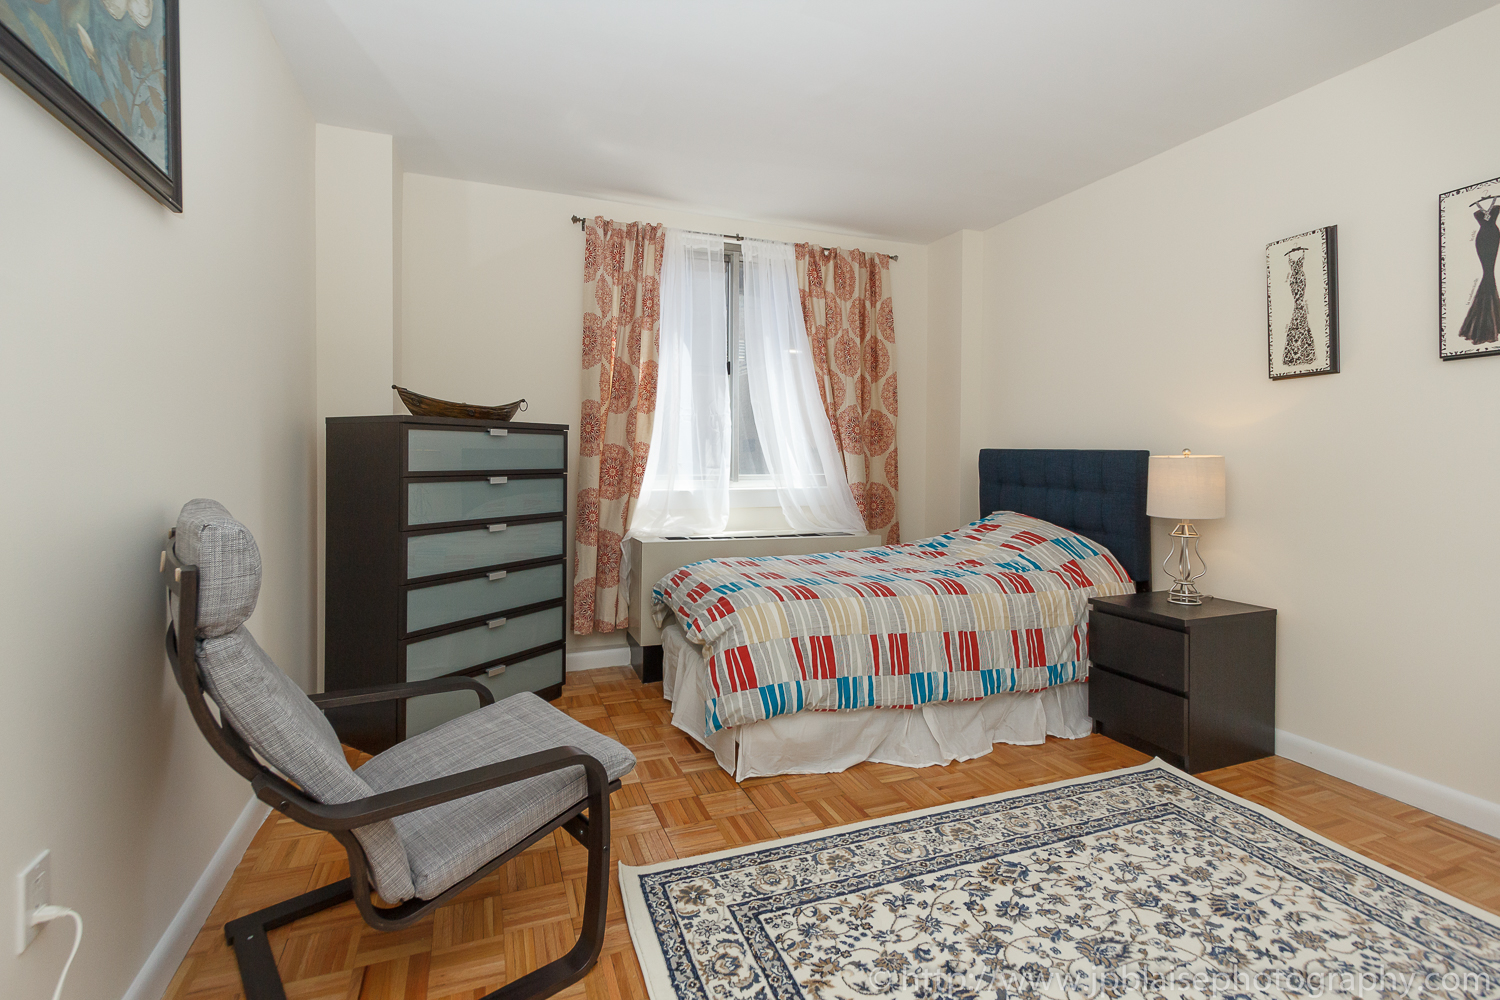 Latest NYC interior photographer work two bedroom two bathroom in Midtown East, Manhattan - picture of bedroom 2